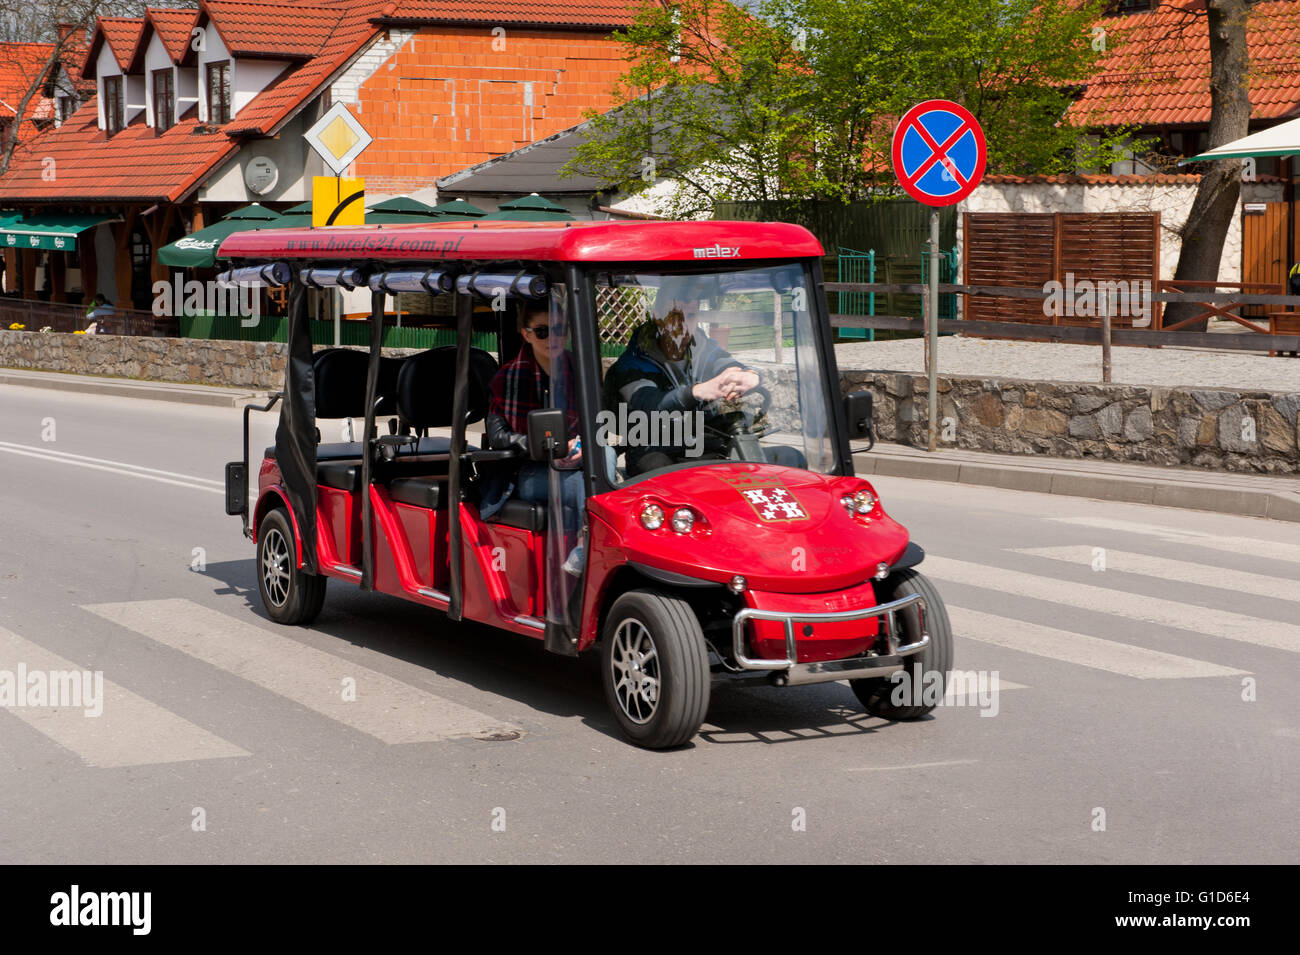 Excursion passenger red melex in Kazimierz Dolny, Poland, Europe, electric car vehicle with passenger taking a short - Stock Image